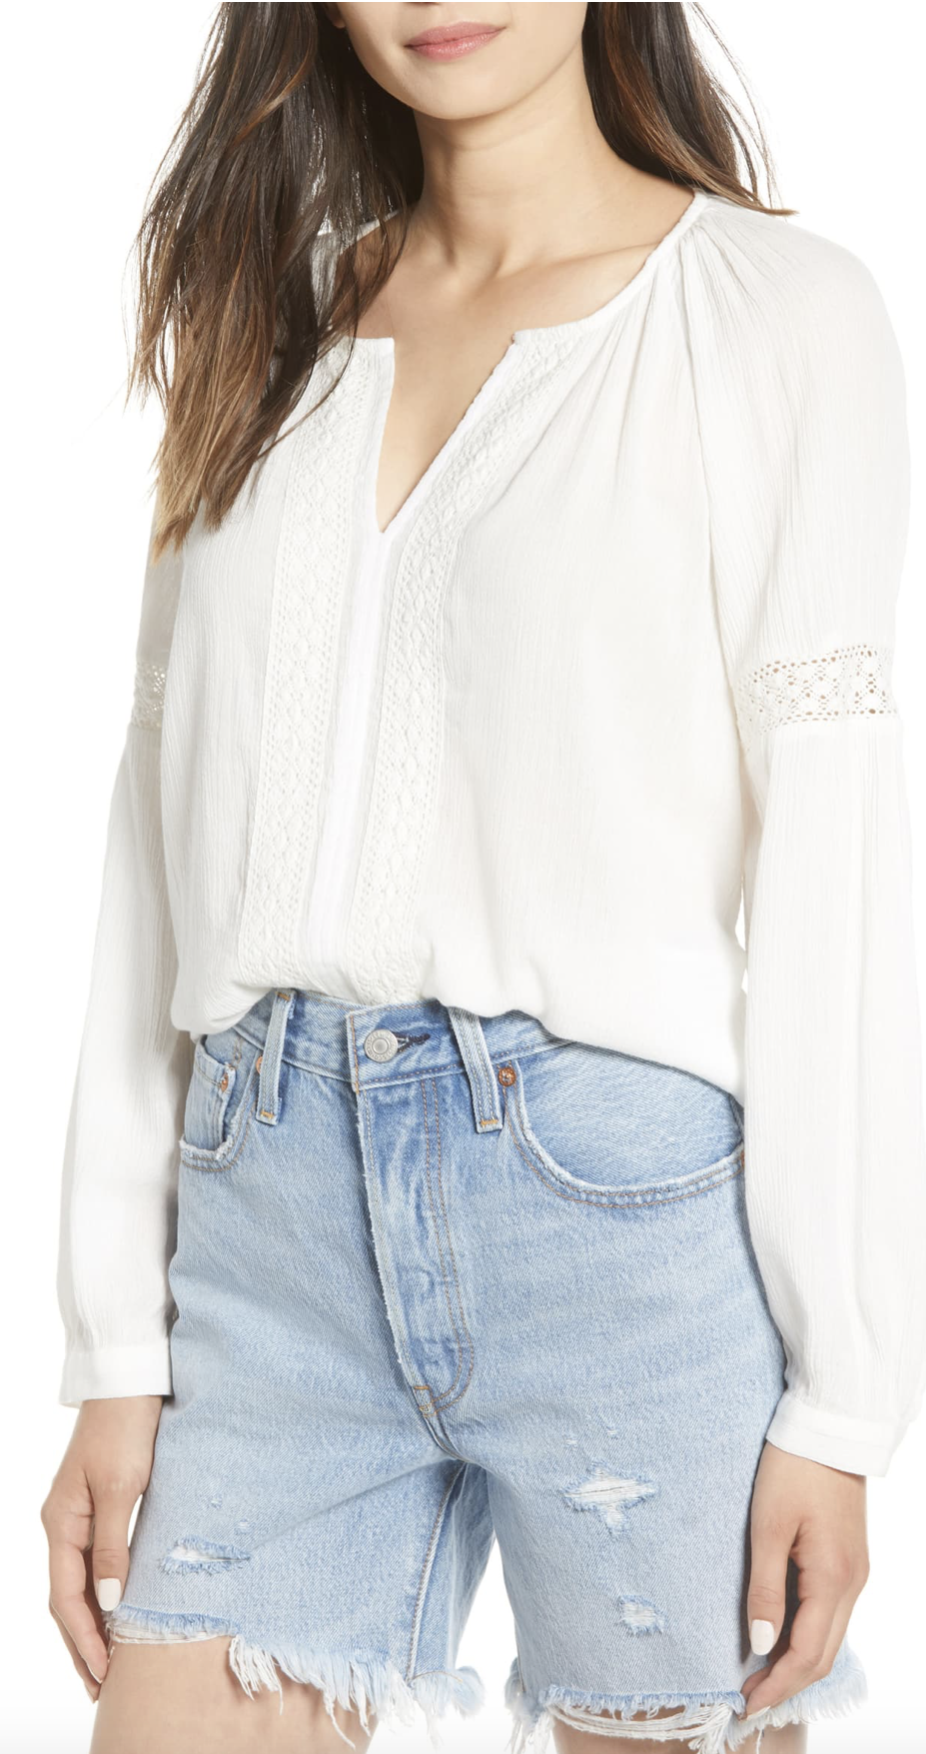 Hinge Embroidered Blouse - $45.90